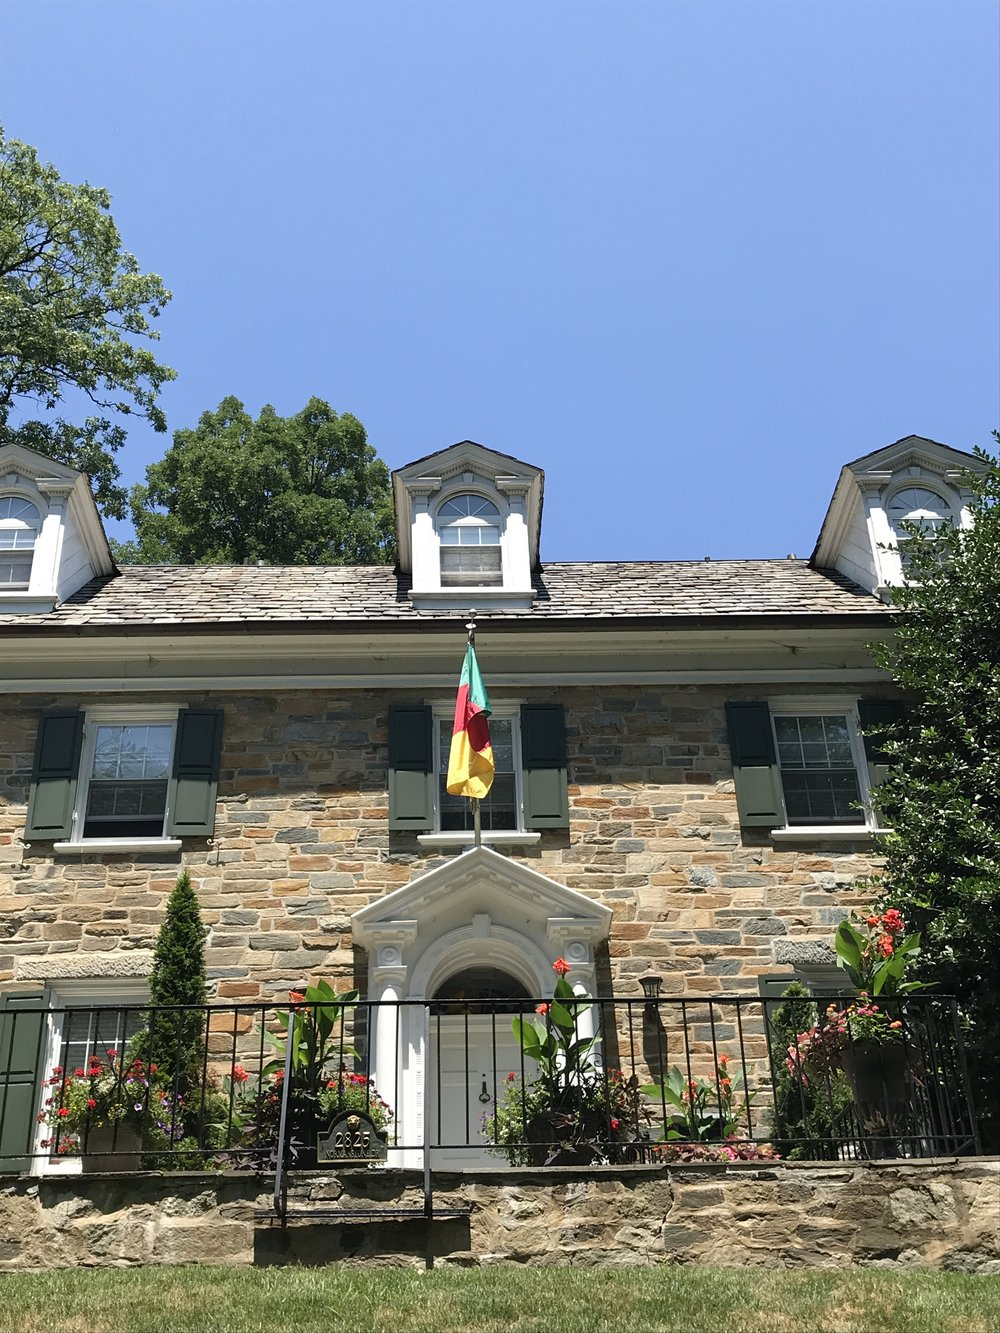 The Residence of the Ambassador of Cameroon.